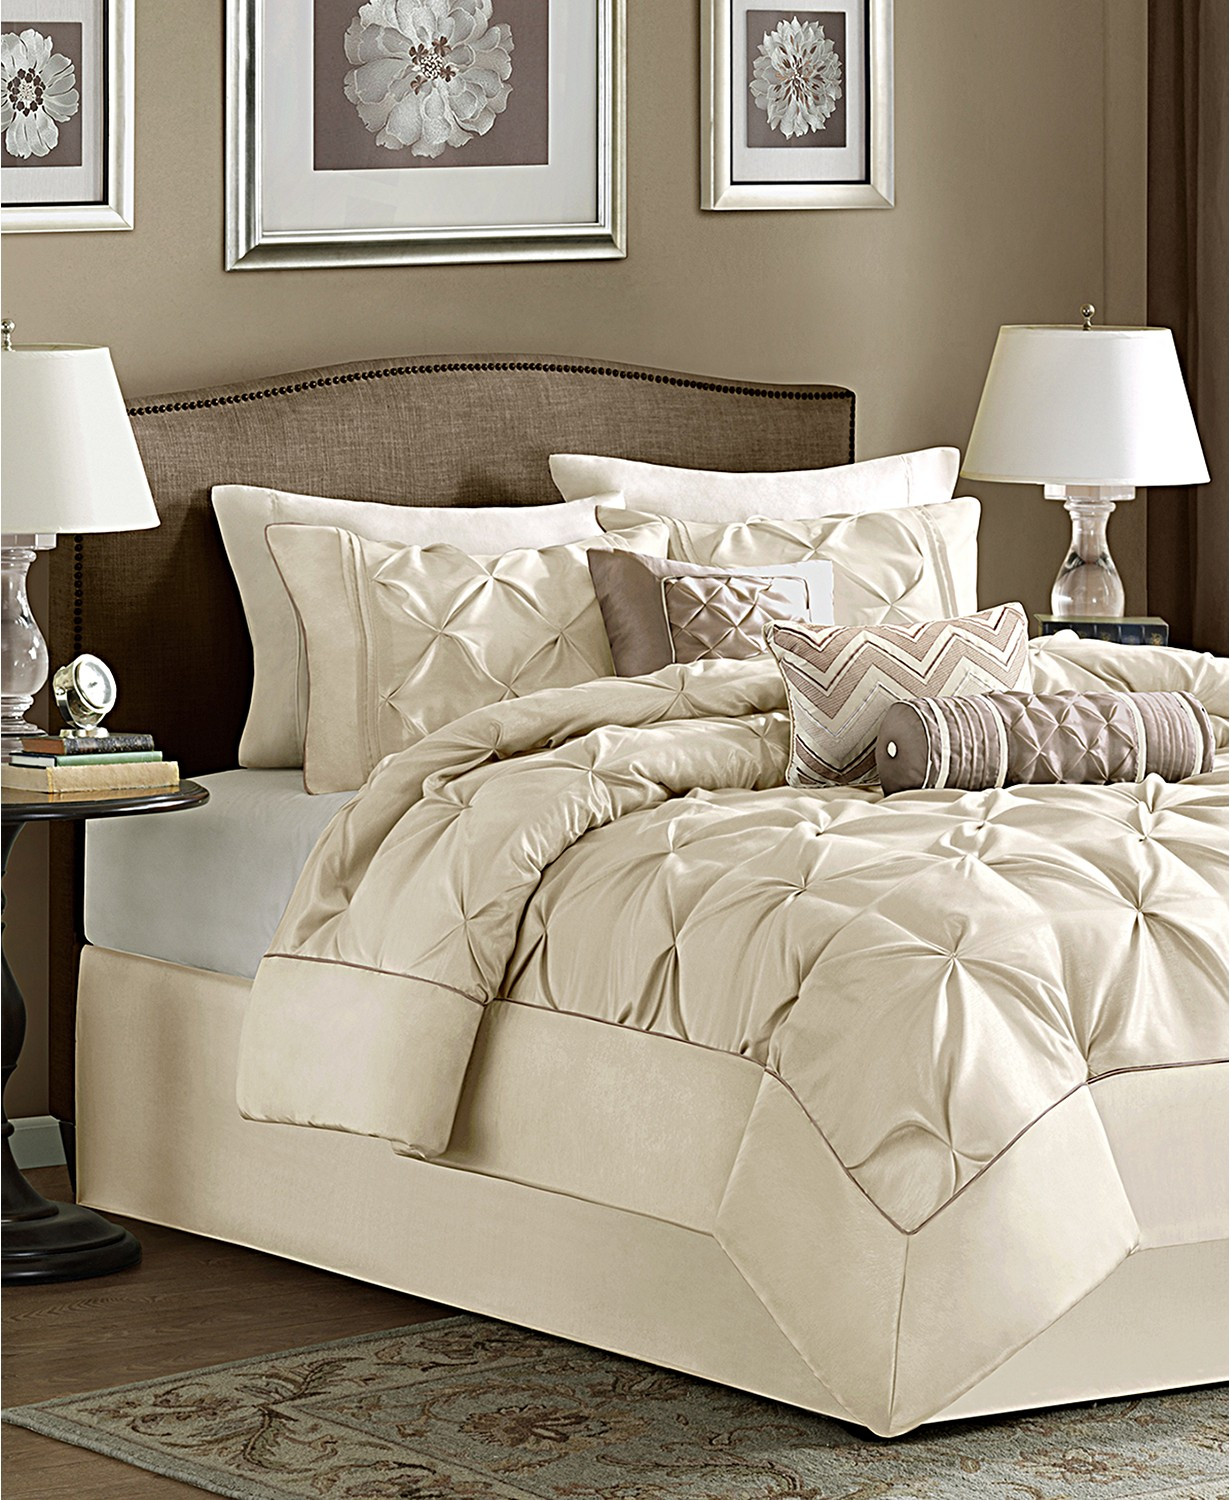 (60% OFF Deal) Wilma 7-Pc. Queen Comforter Set  $87.99